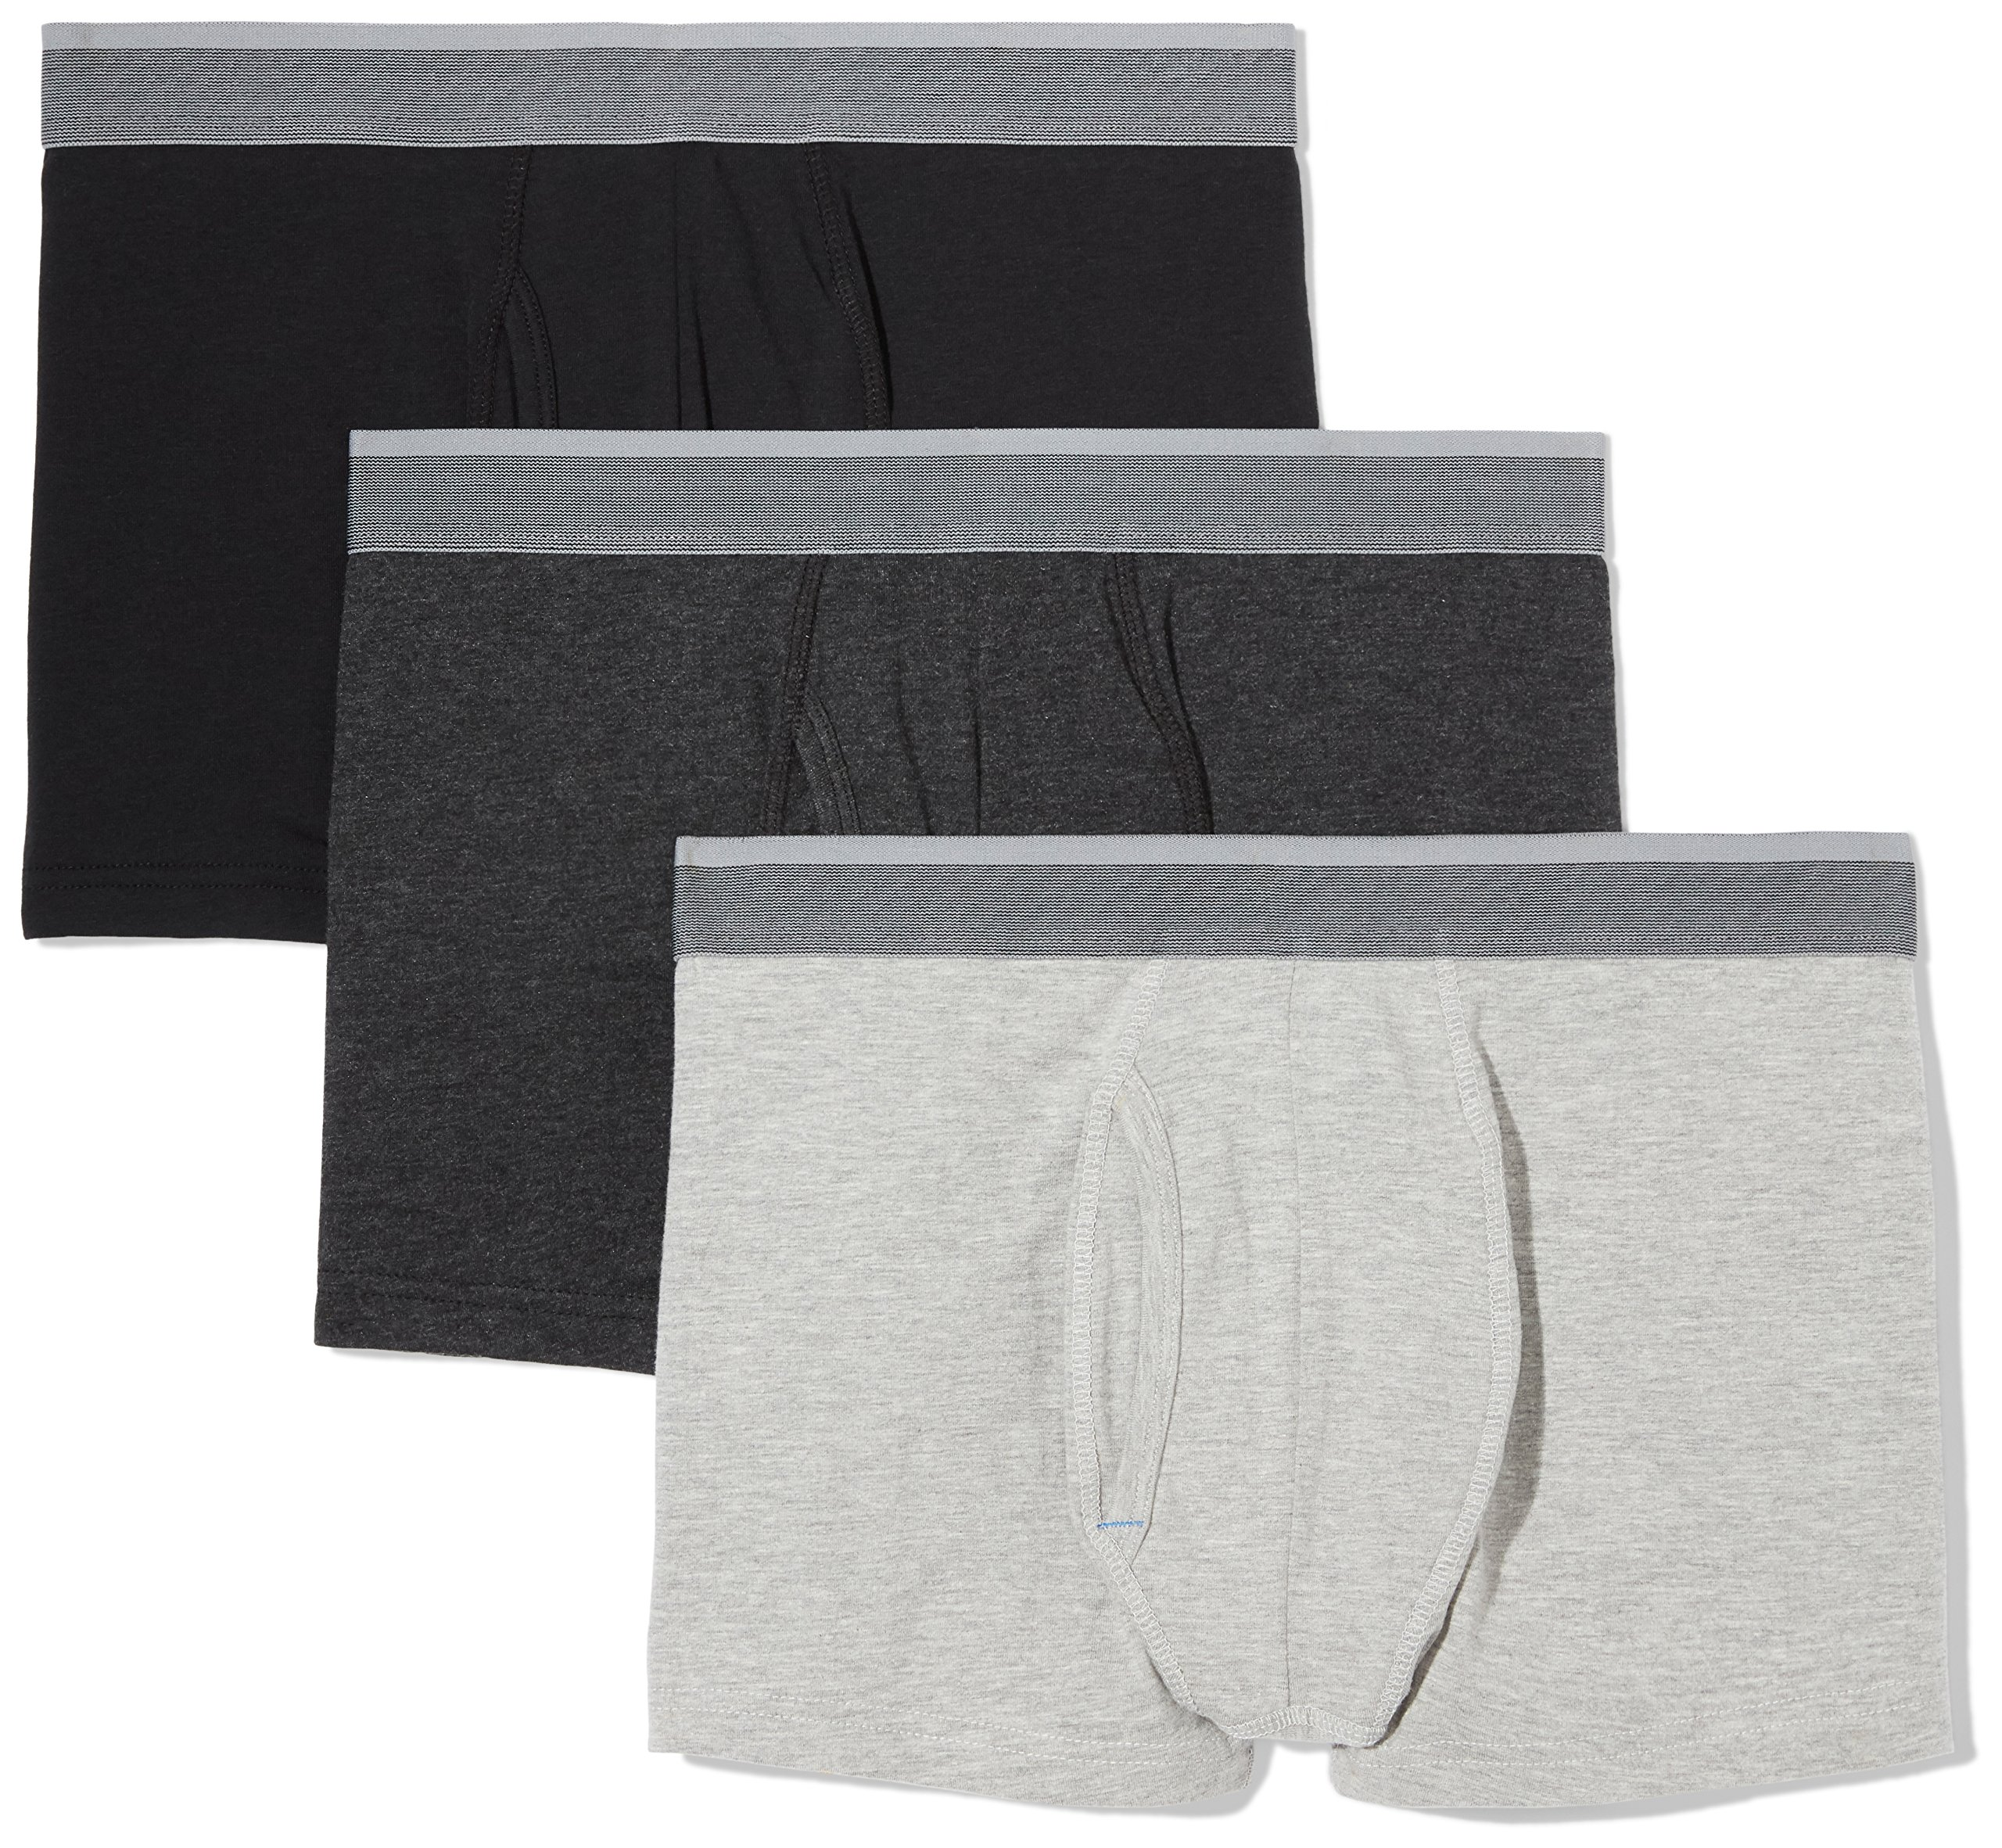 Amazon Essentials Men's 3-Pack Performance Cotton Stretch Trunk, Black/Dark Grey Heather/Light Grey Heather, Large by Amazon Essentials